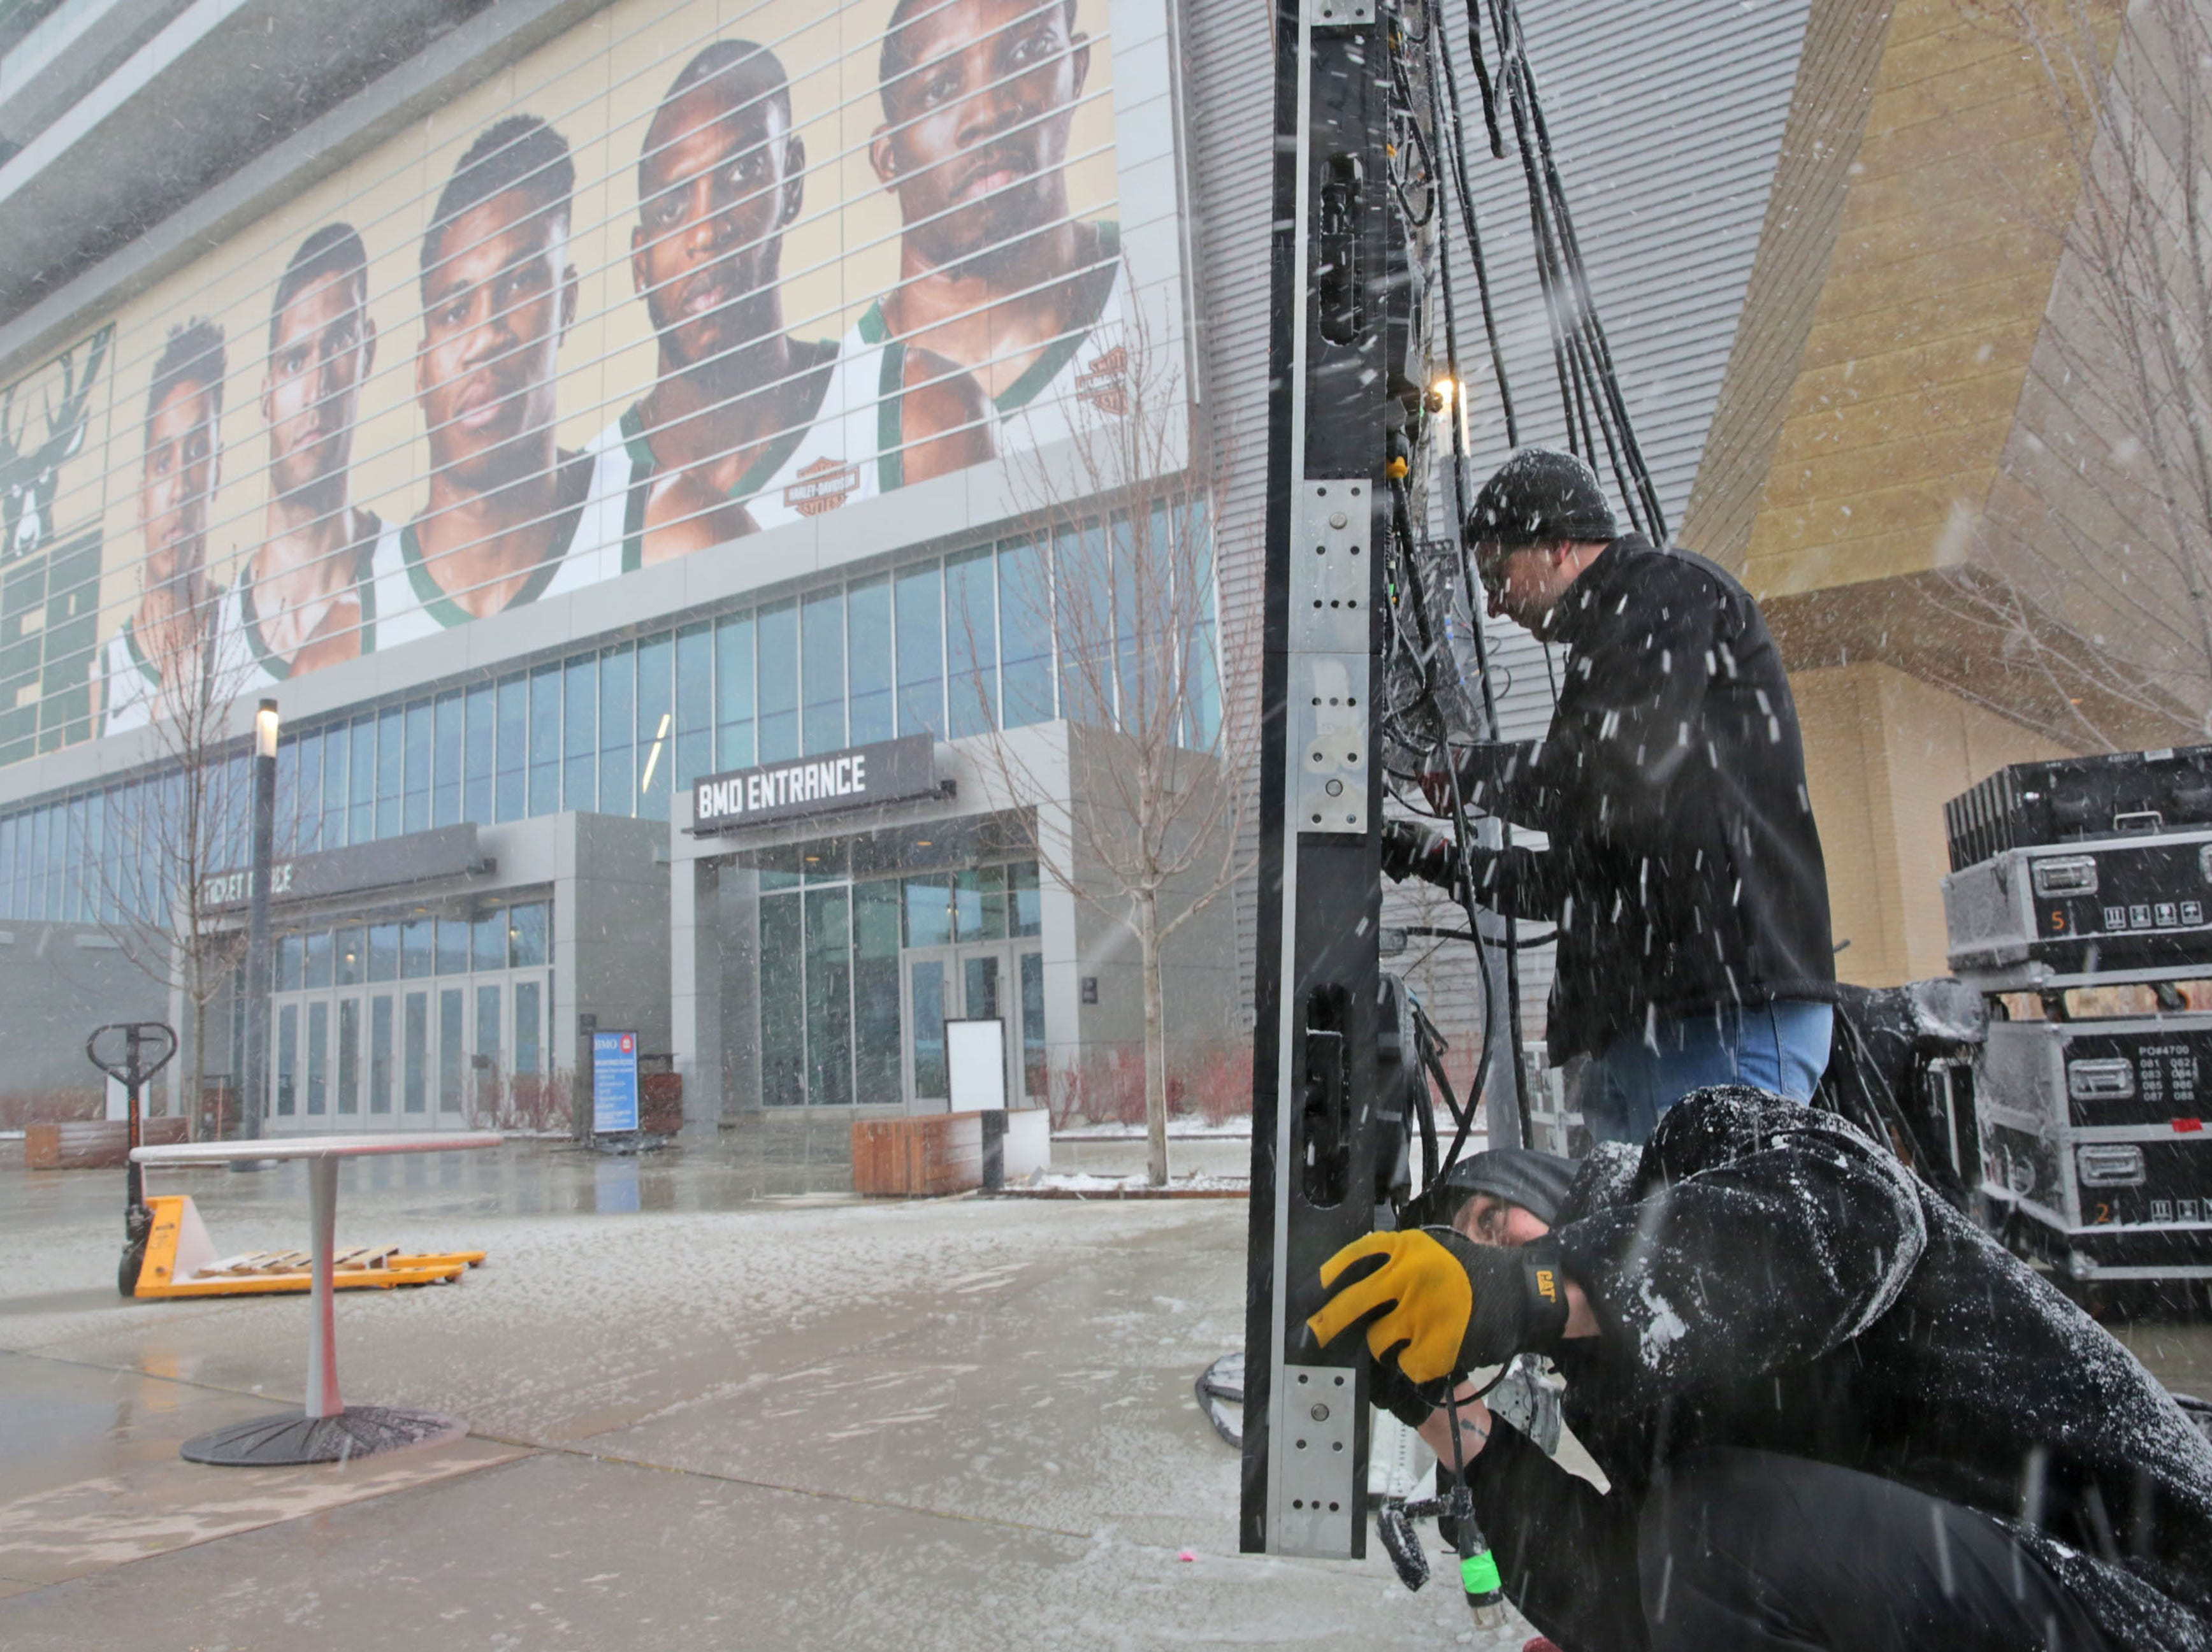 Paul Makowski (above) and Gunther Rosentreter of Exciting Events work in the snow to hook up an outdoor video board at Fiserv Forum before game one in the first round of the NBA playoffs at Fiserv Forum.